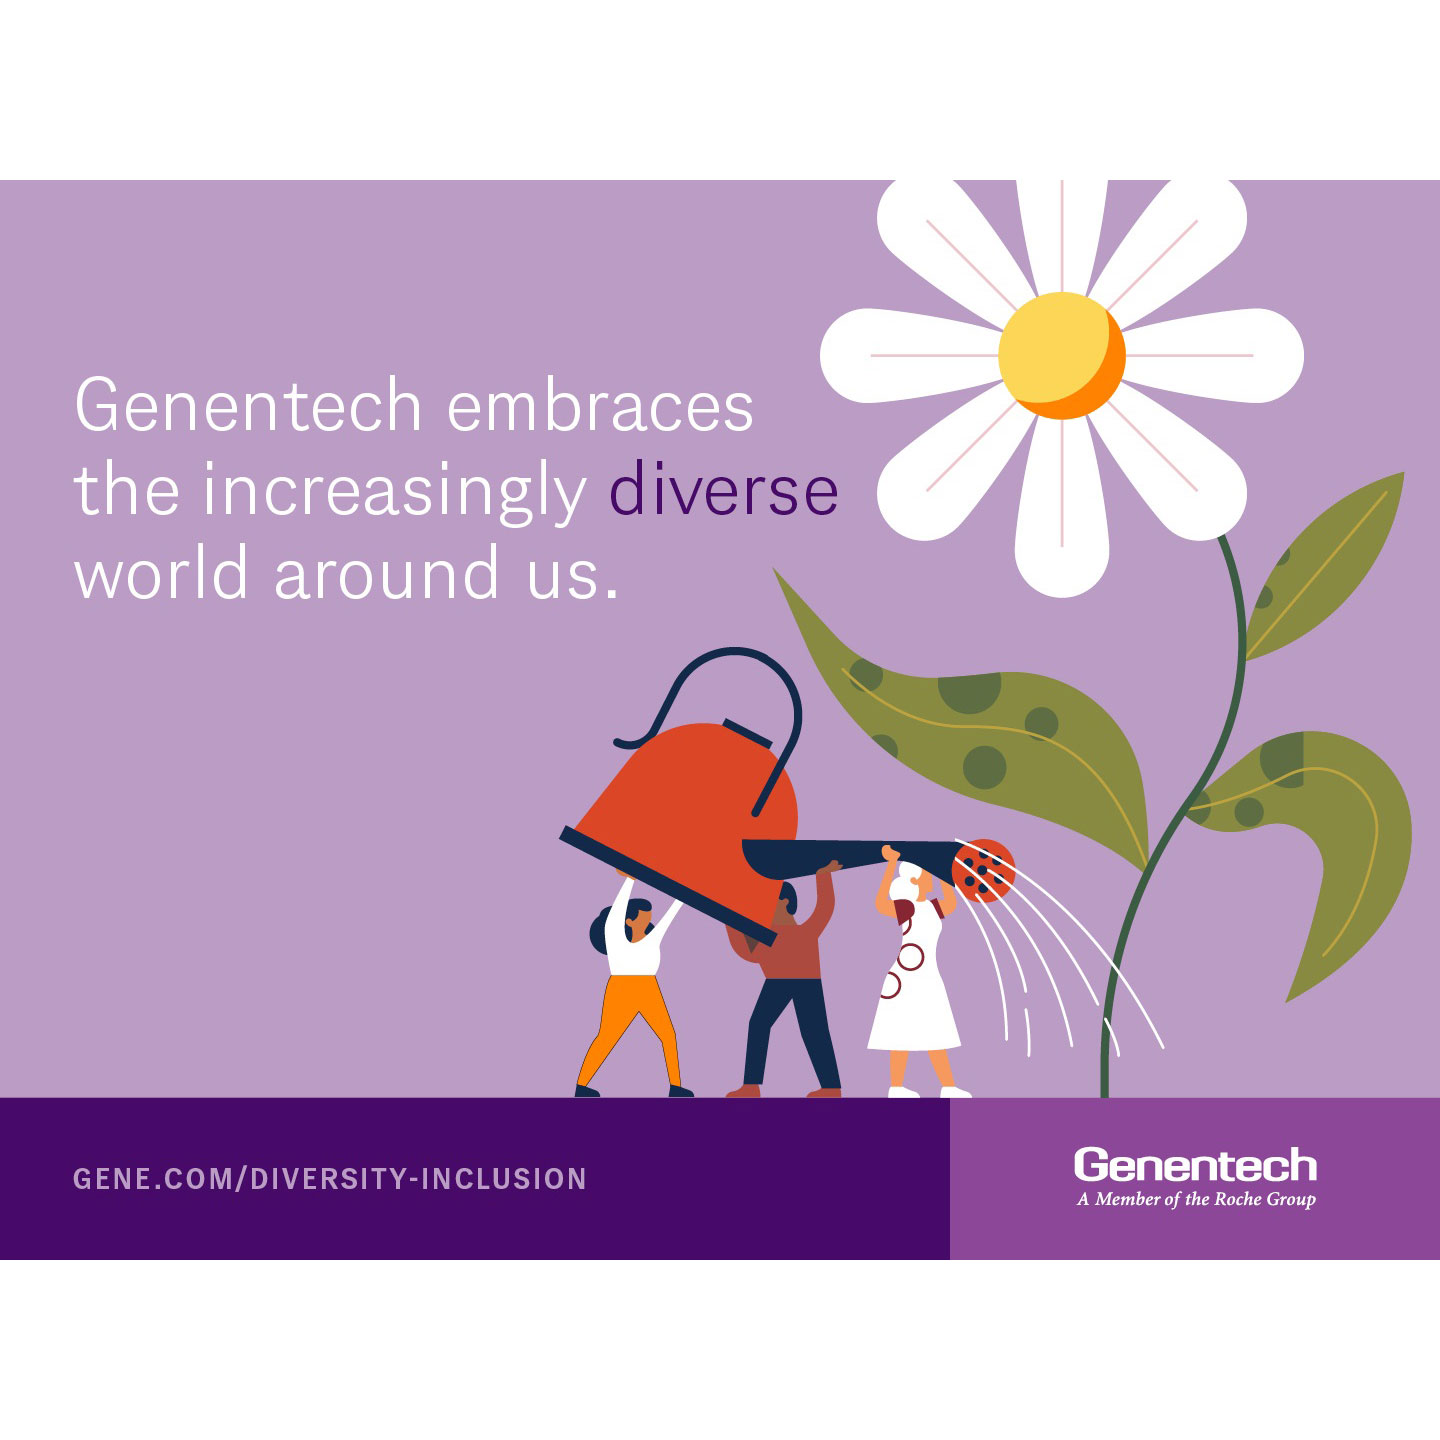 Genentech embraces the increasingly diverse world around us.